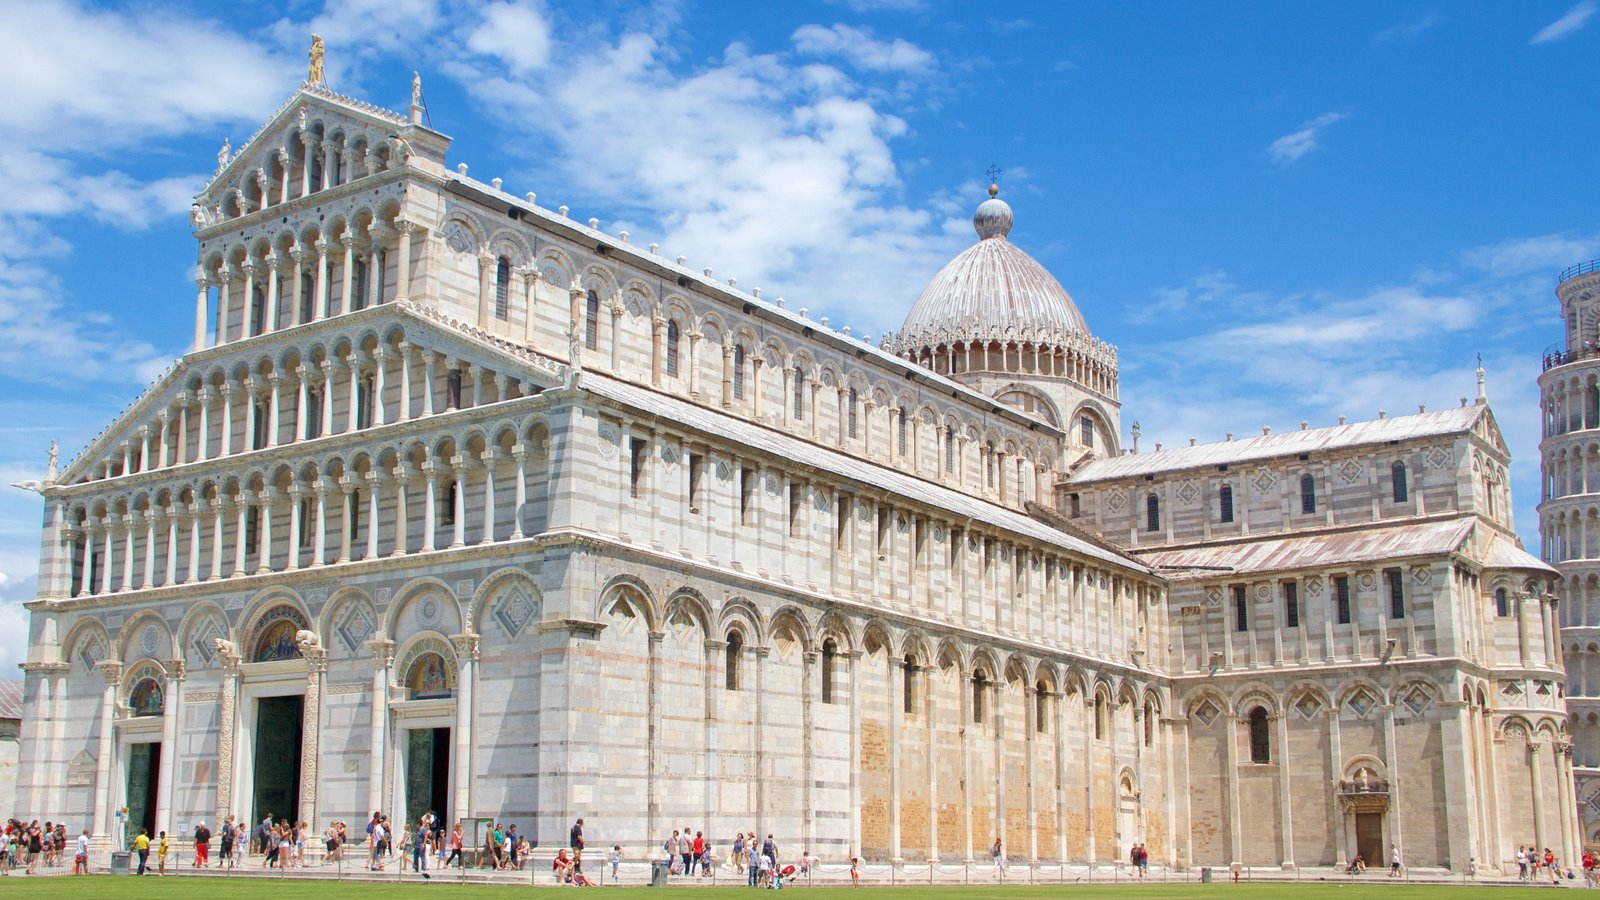 Cathedral of Pisa showing heritage elements, a church or cathedral and a monument